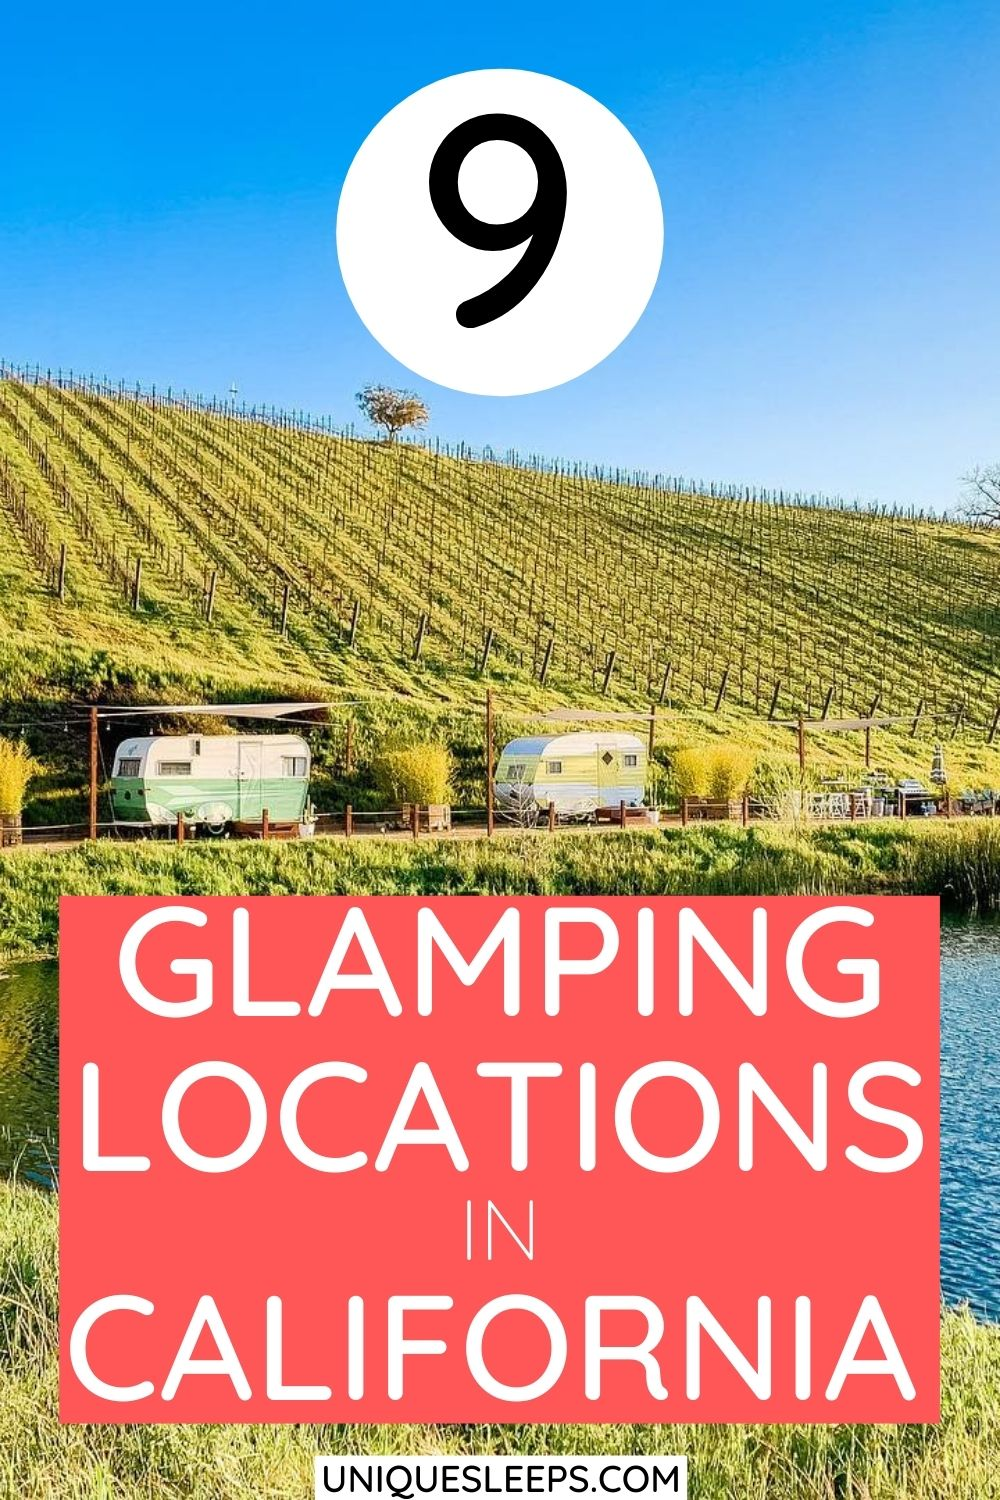 9 glamping locations in California